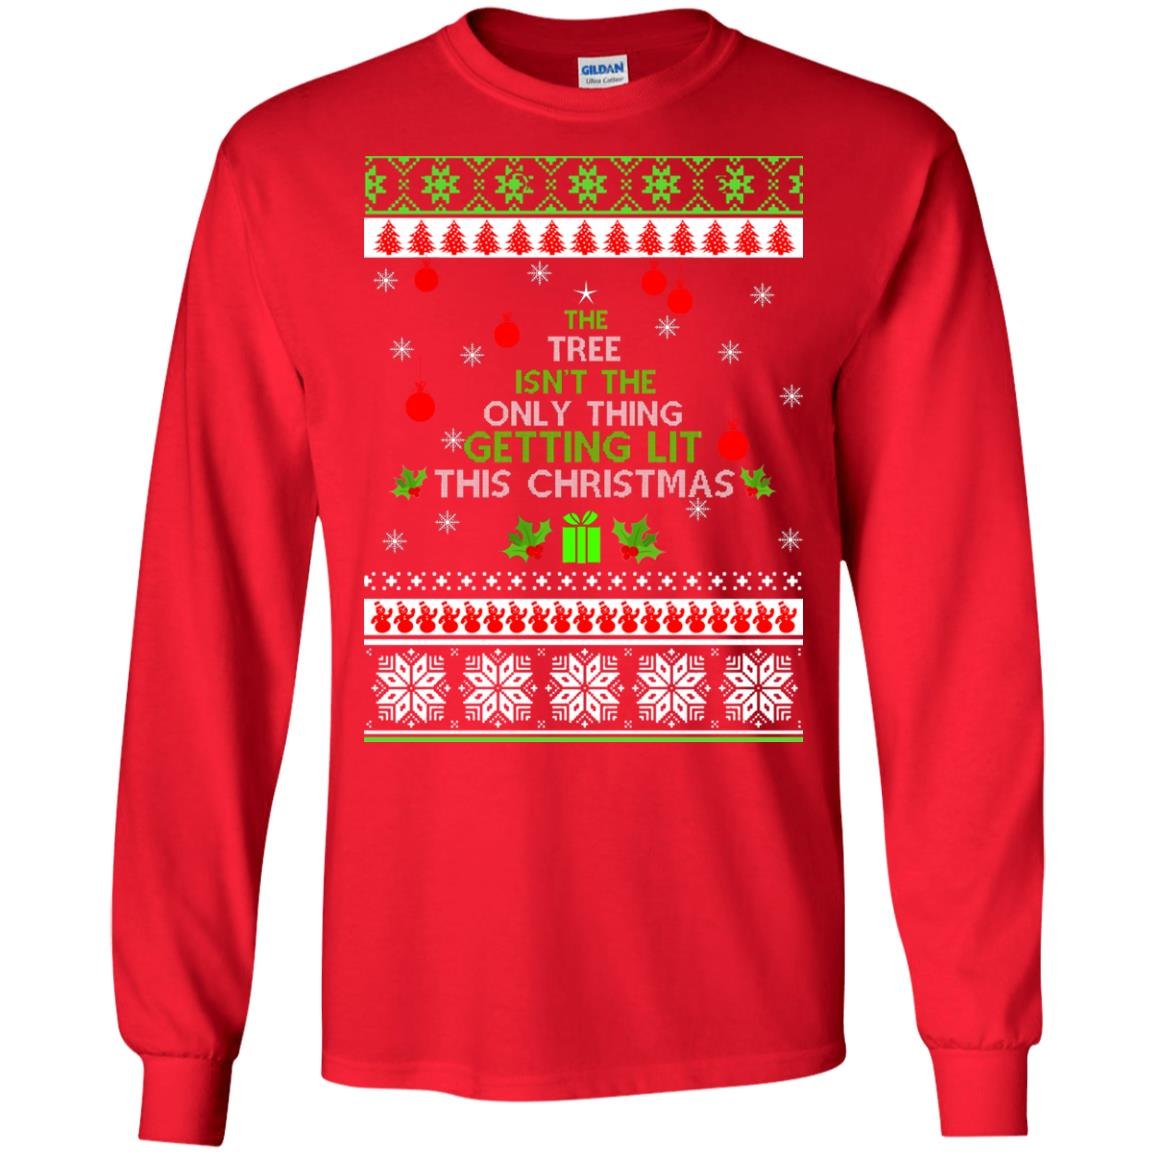 image 5565 - The Tree Isn't The Only Thing Getting Lit This Christmas Sweater, Long Sleeve